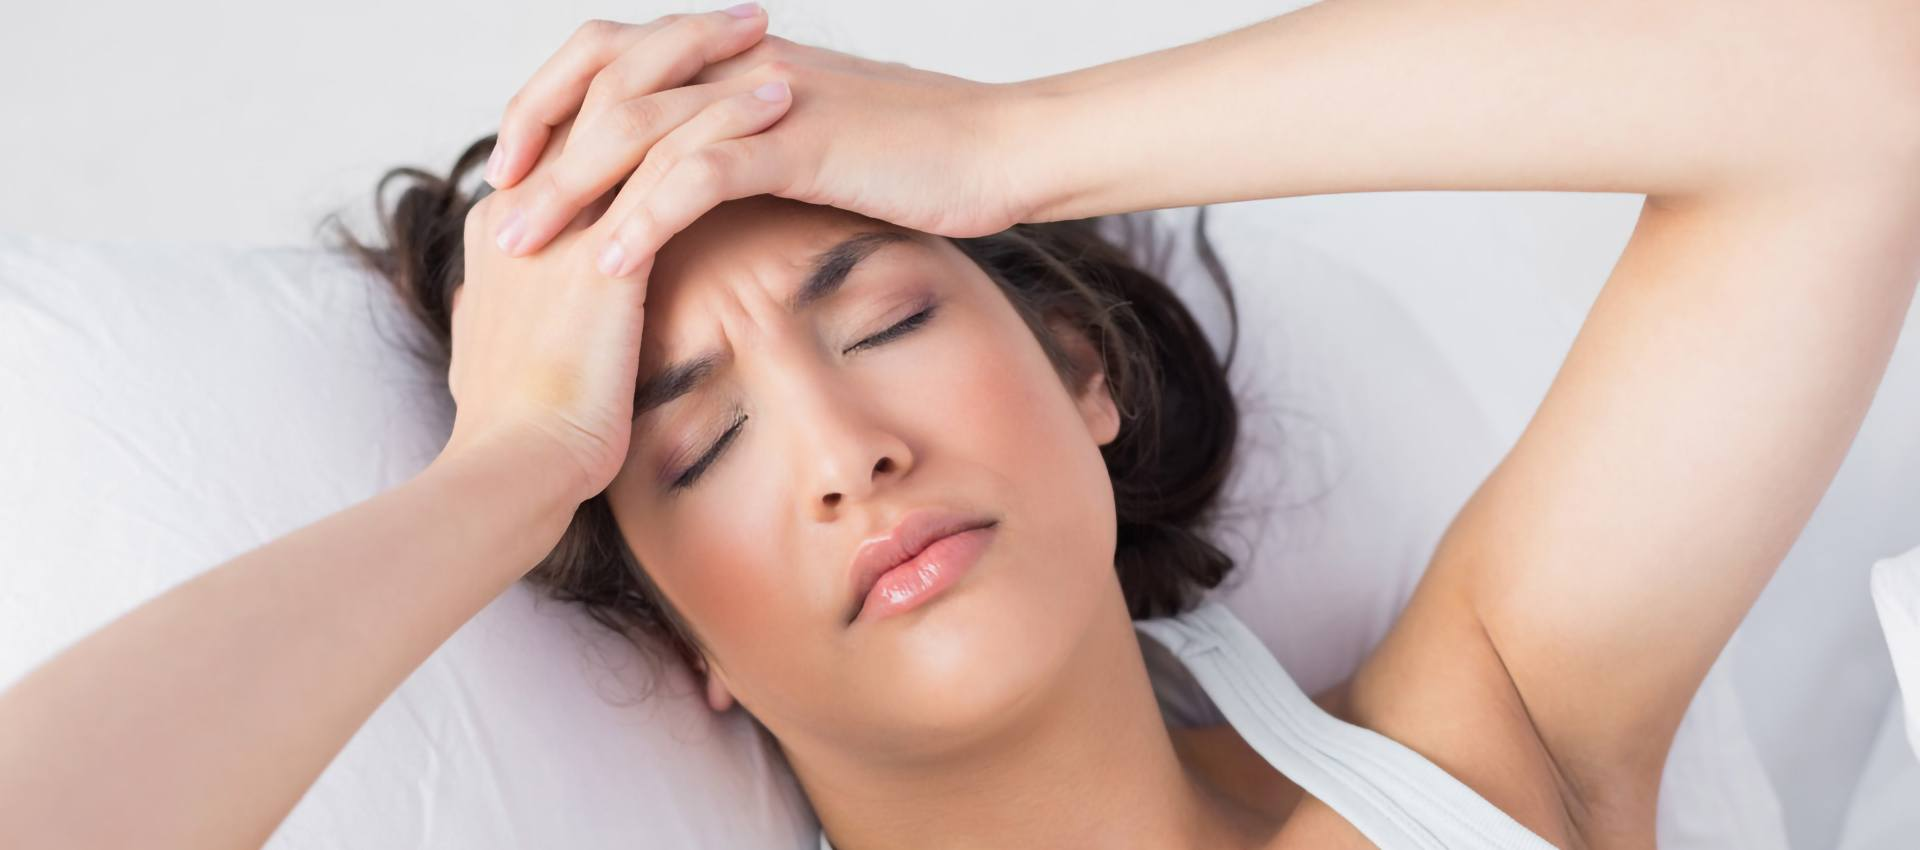 Acupuncture For Migranes And Headaches